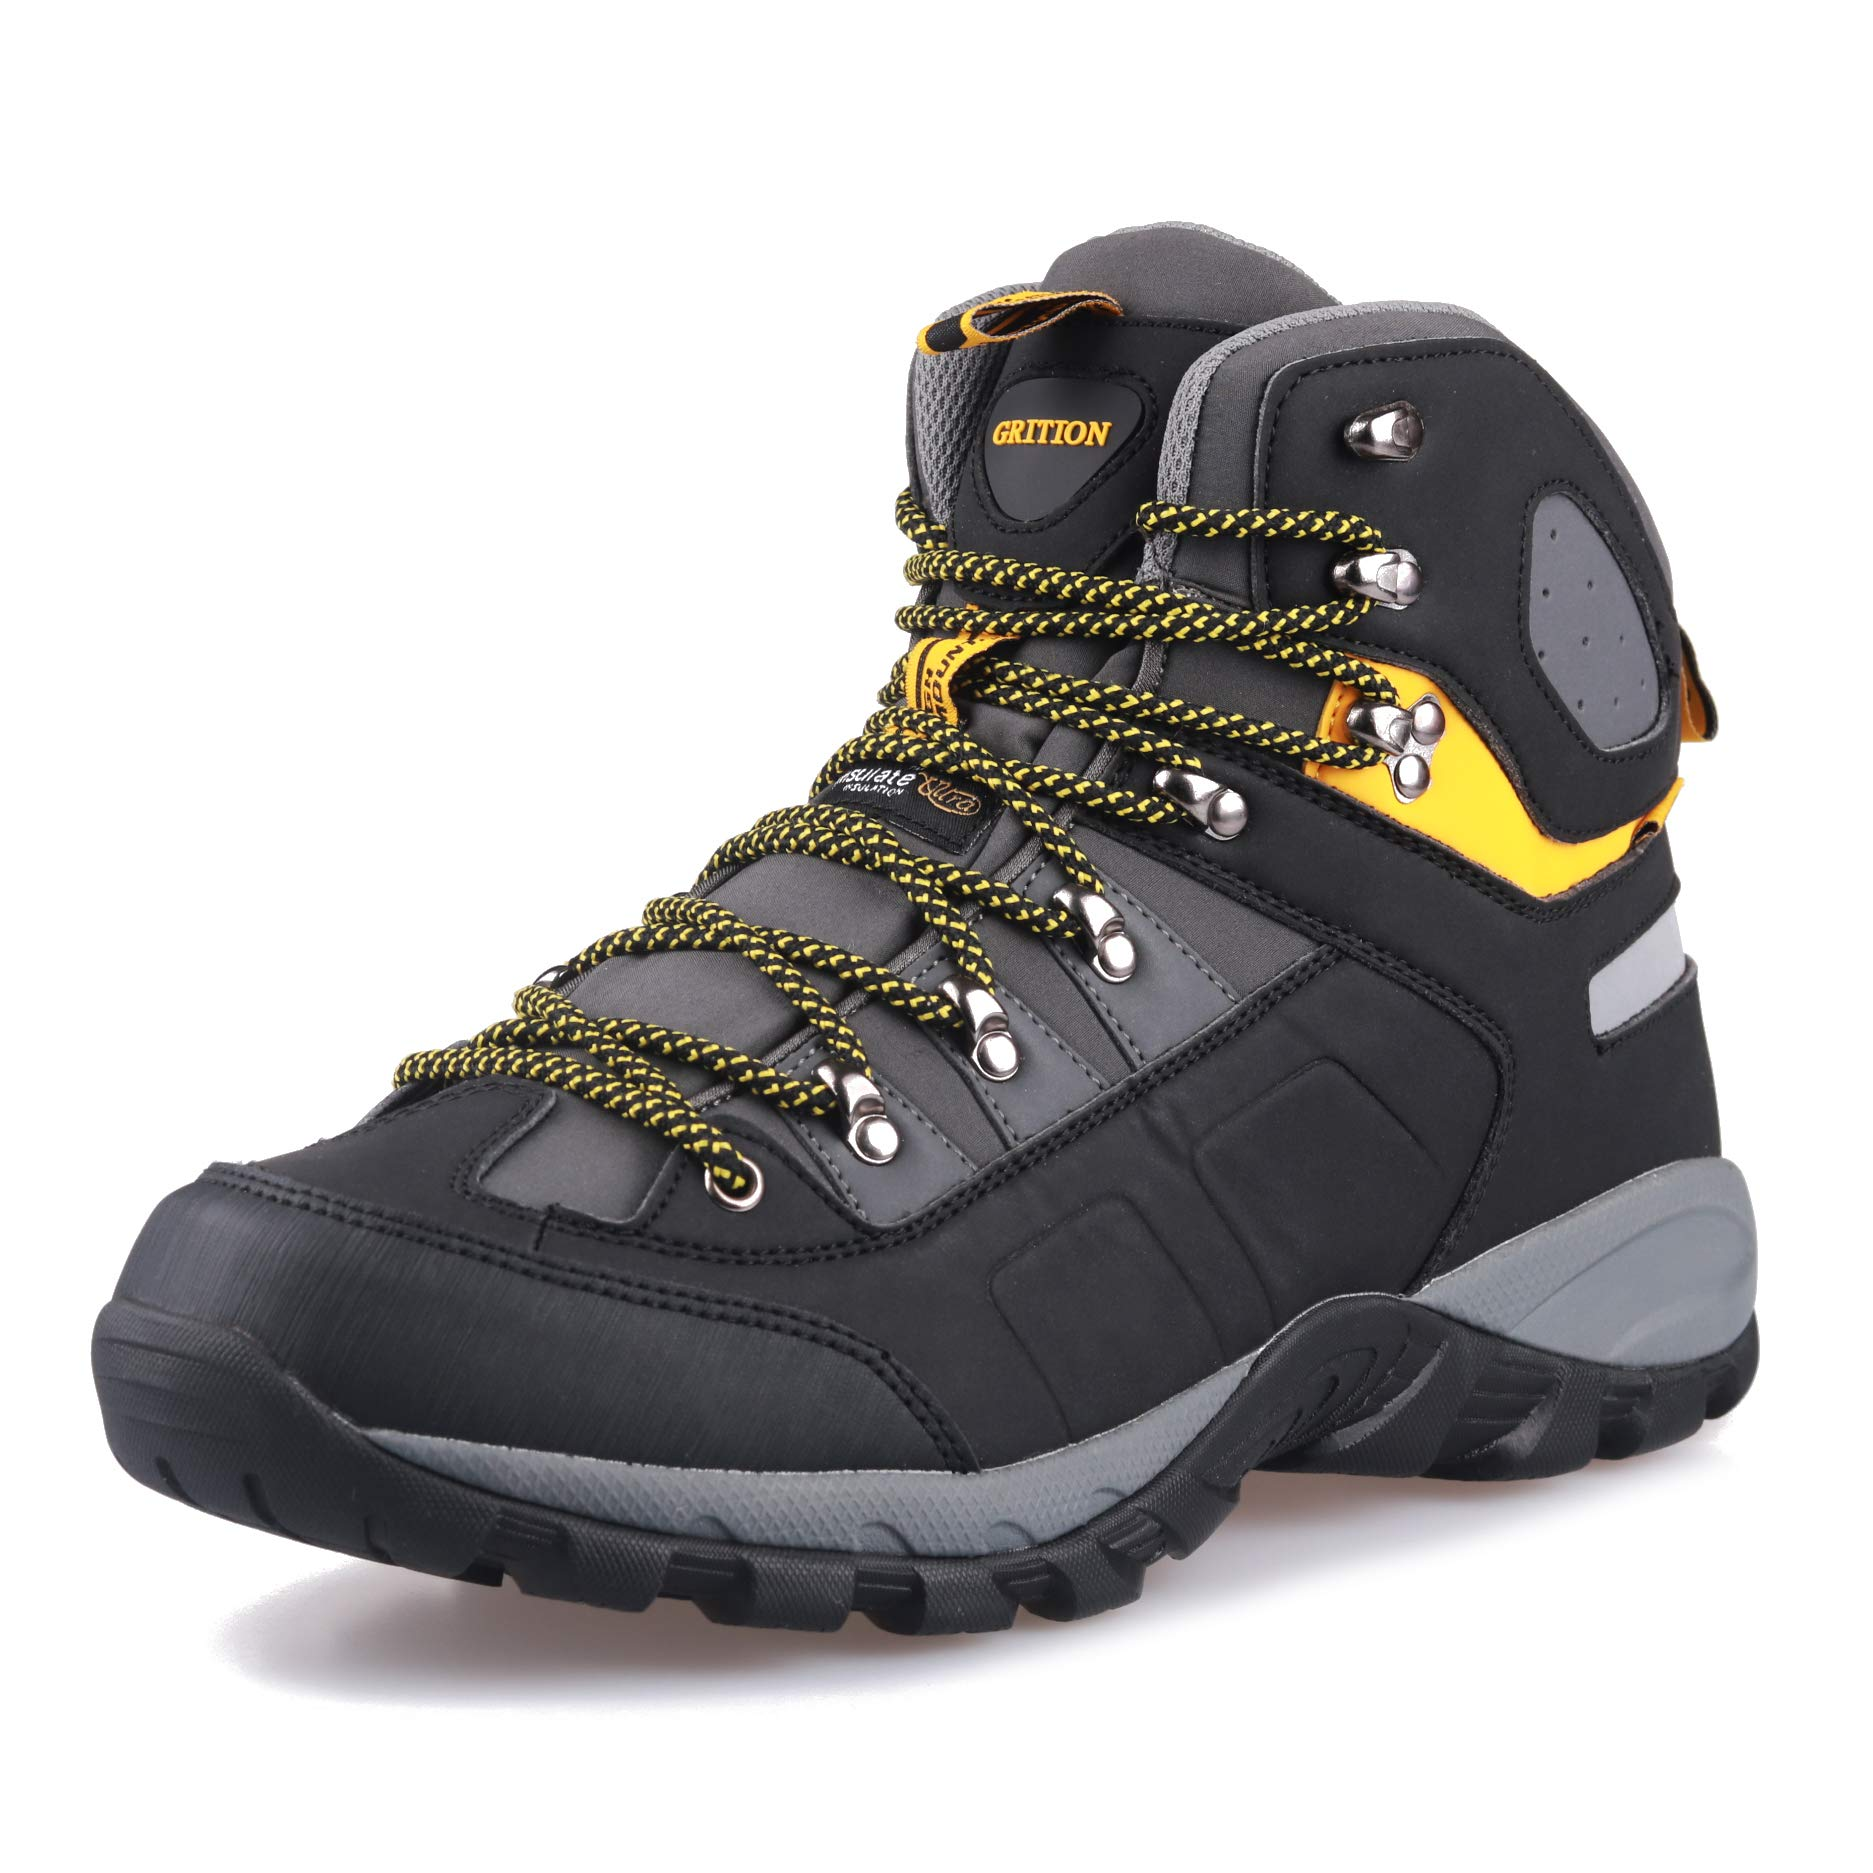 GRITION Men Hiking Boots Waterproof High Top Walking Non Slip Soft Shell Trekking Shoes Black/Yellow